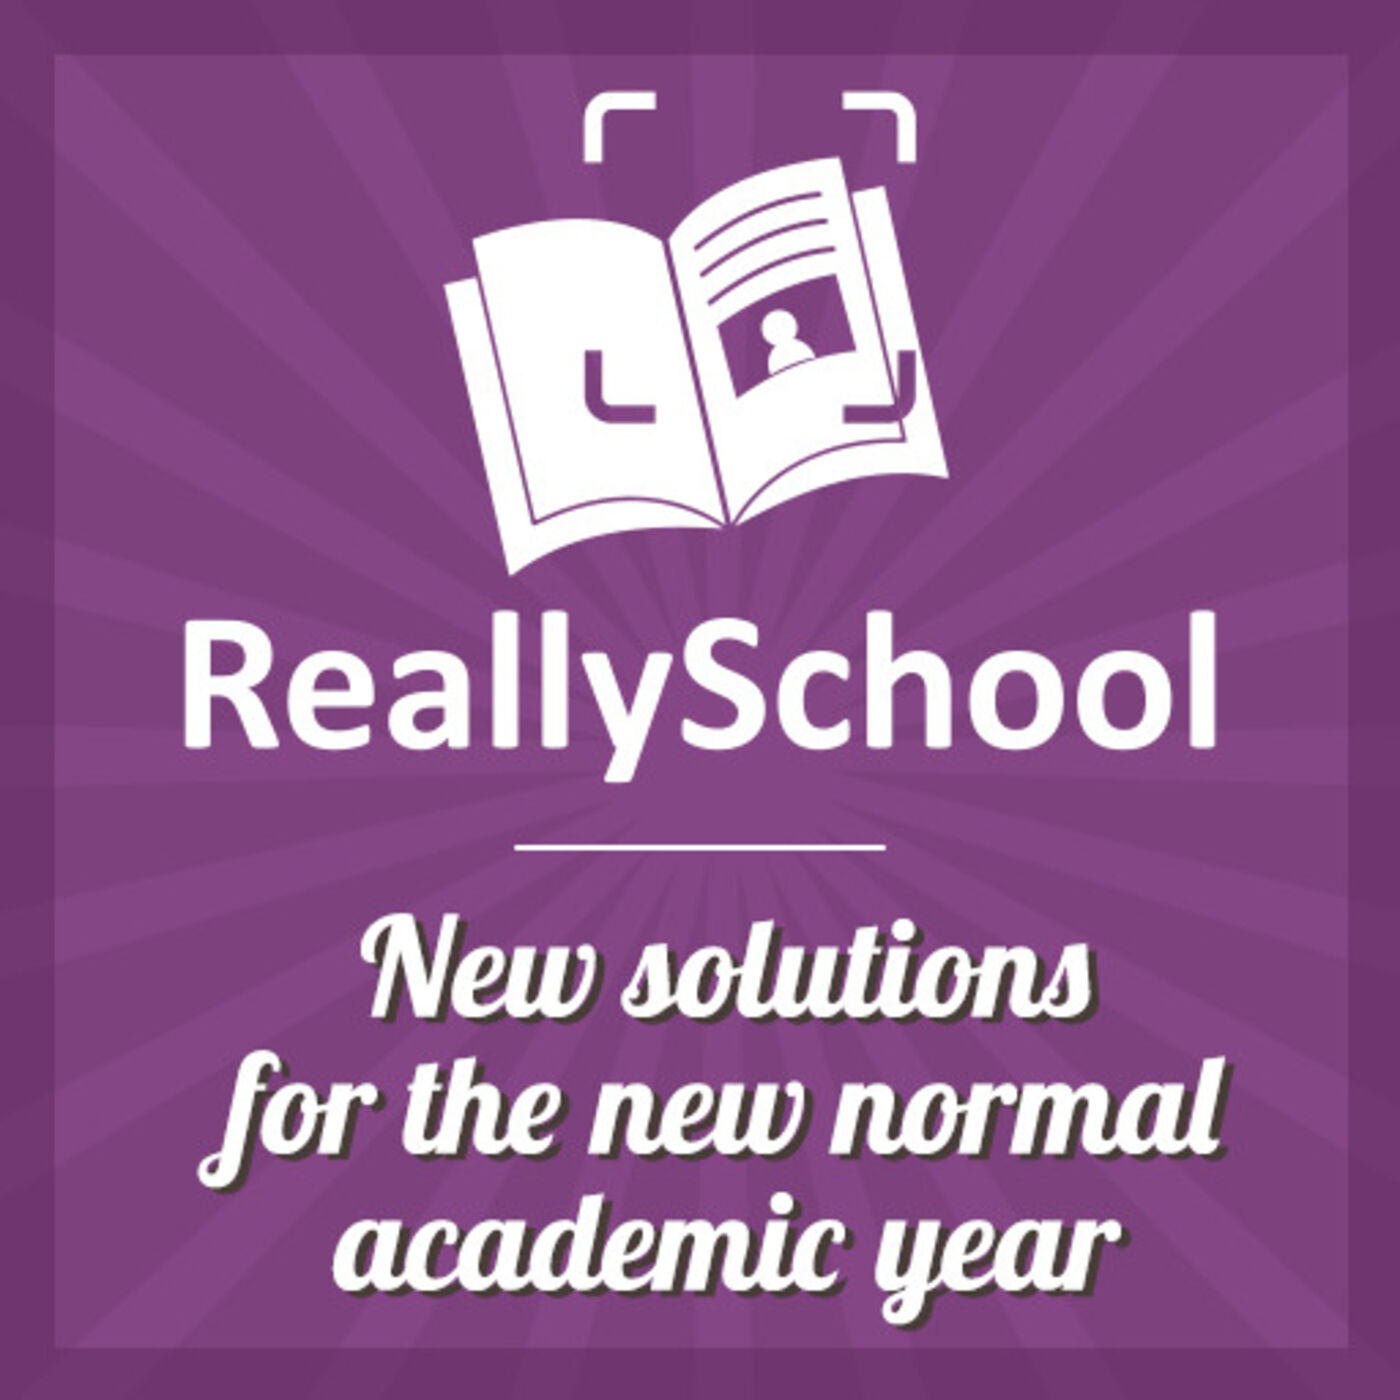 New solutions for the new normal academic year